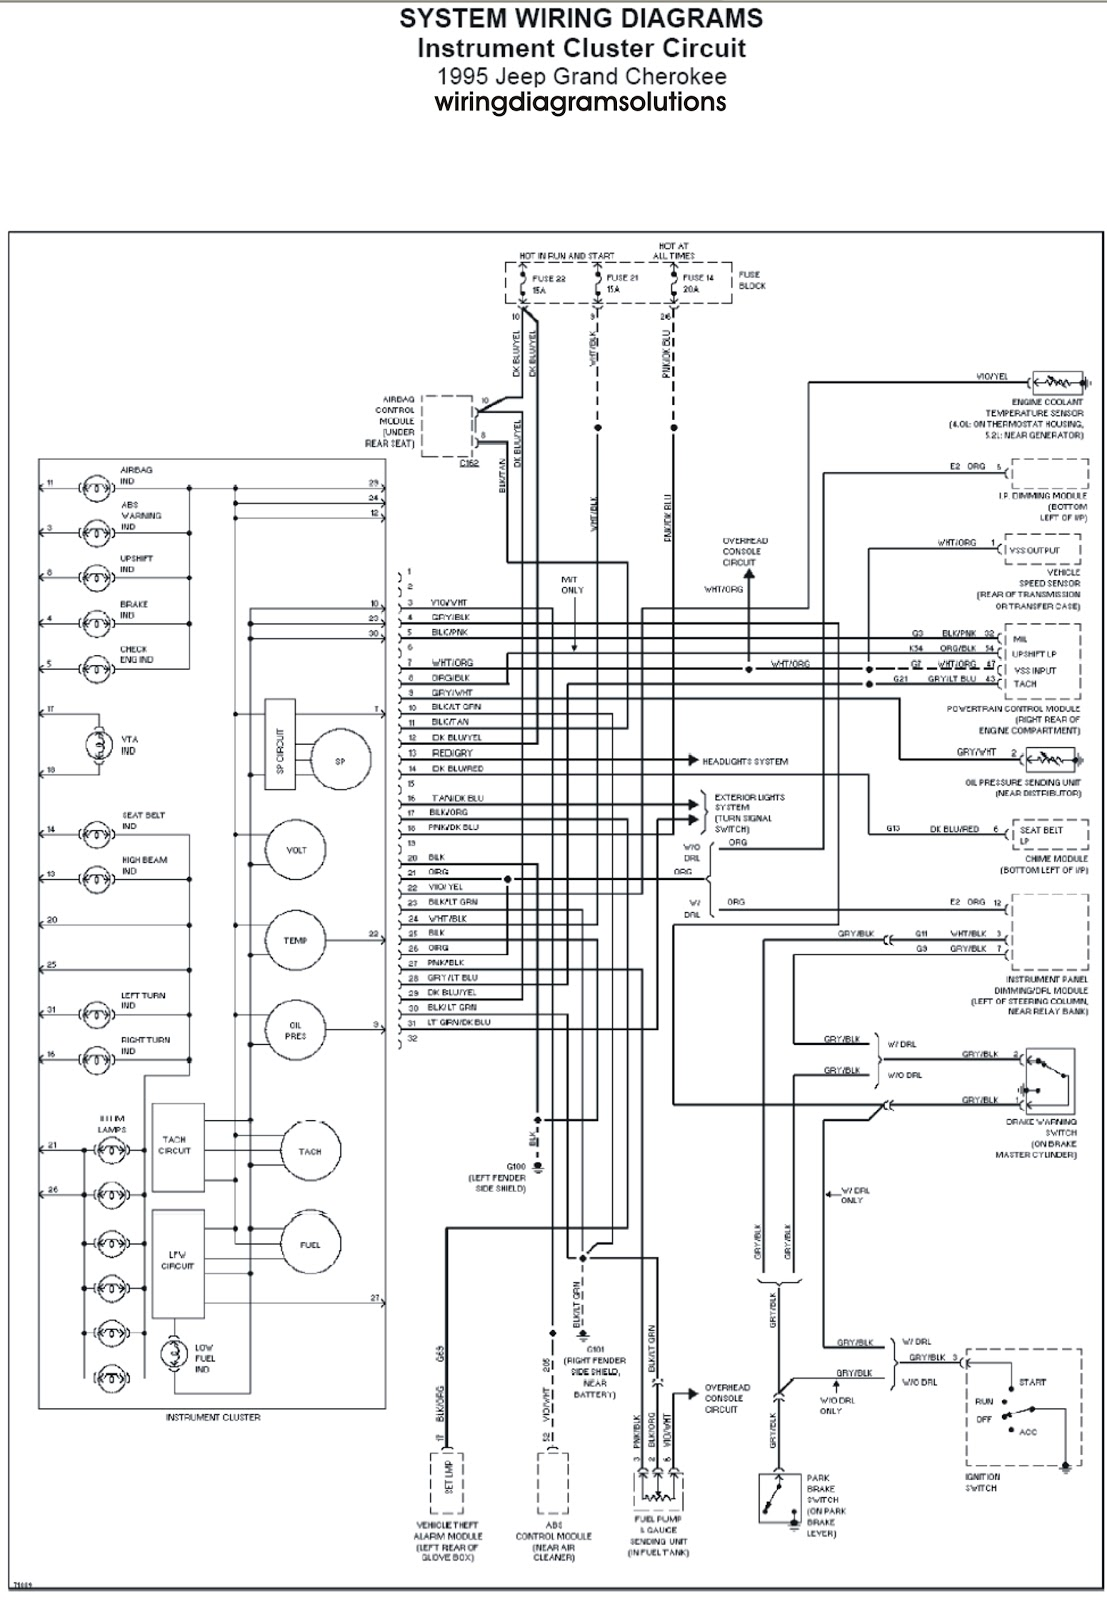 medium resolution of can bus wiring system free download wiring diagram schematic location 2014 jeep wrangler free download wiring diagram schematic